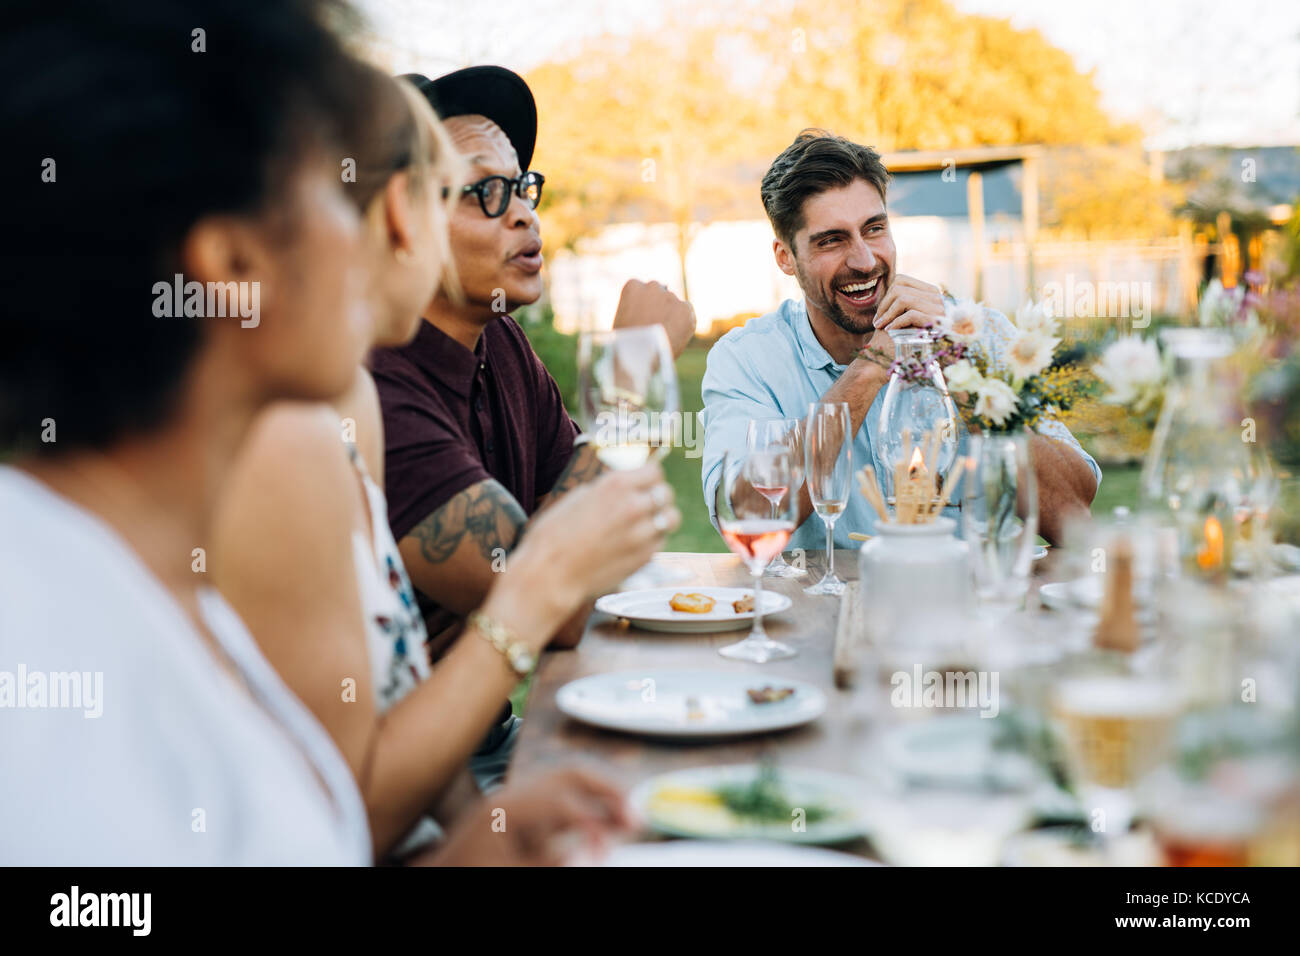 Young man laughing while sitting with friends at outdoors party. Friends enjoying summer meal at outdoor restaurant. - Stock Image